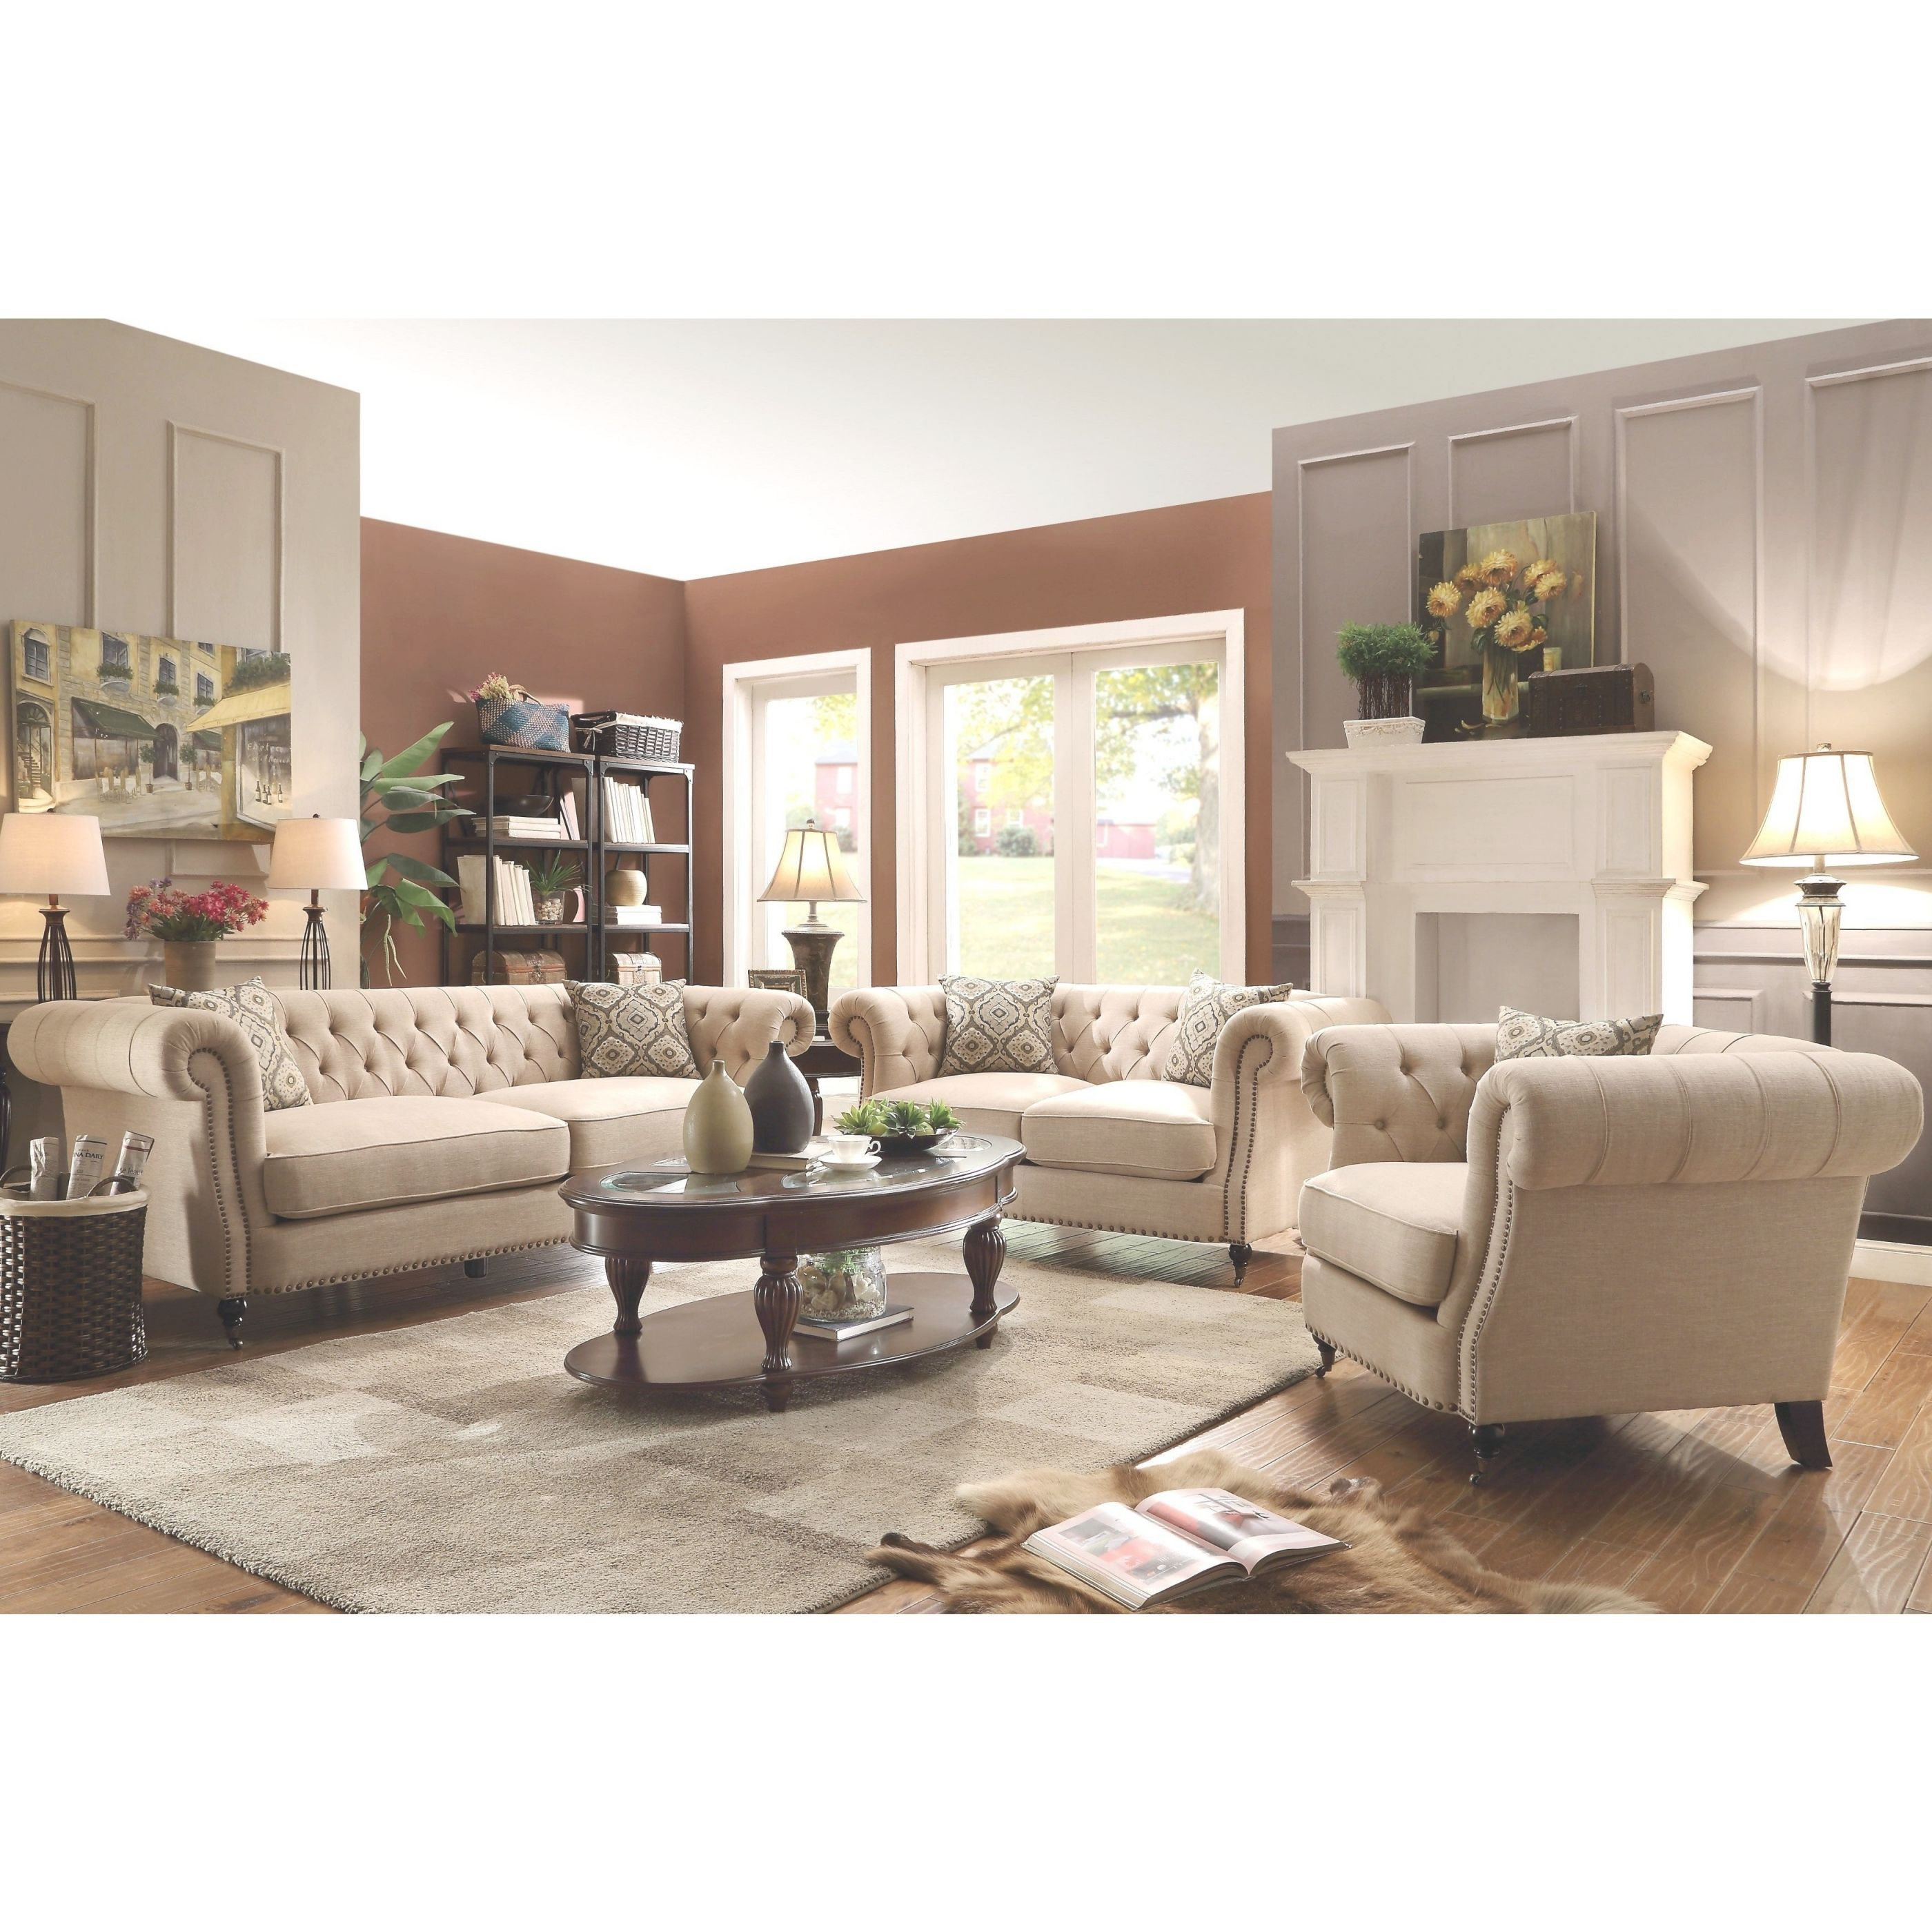 Mid-Century Posh Living Room Sofa Collection With Tufted Design And Nailhead Trim within Living Room Furnitures